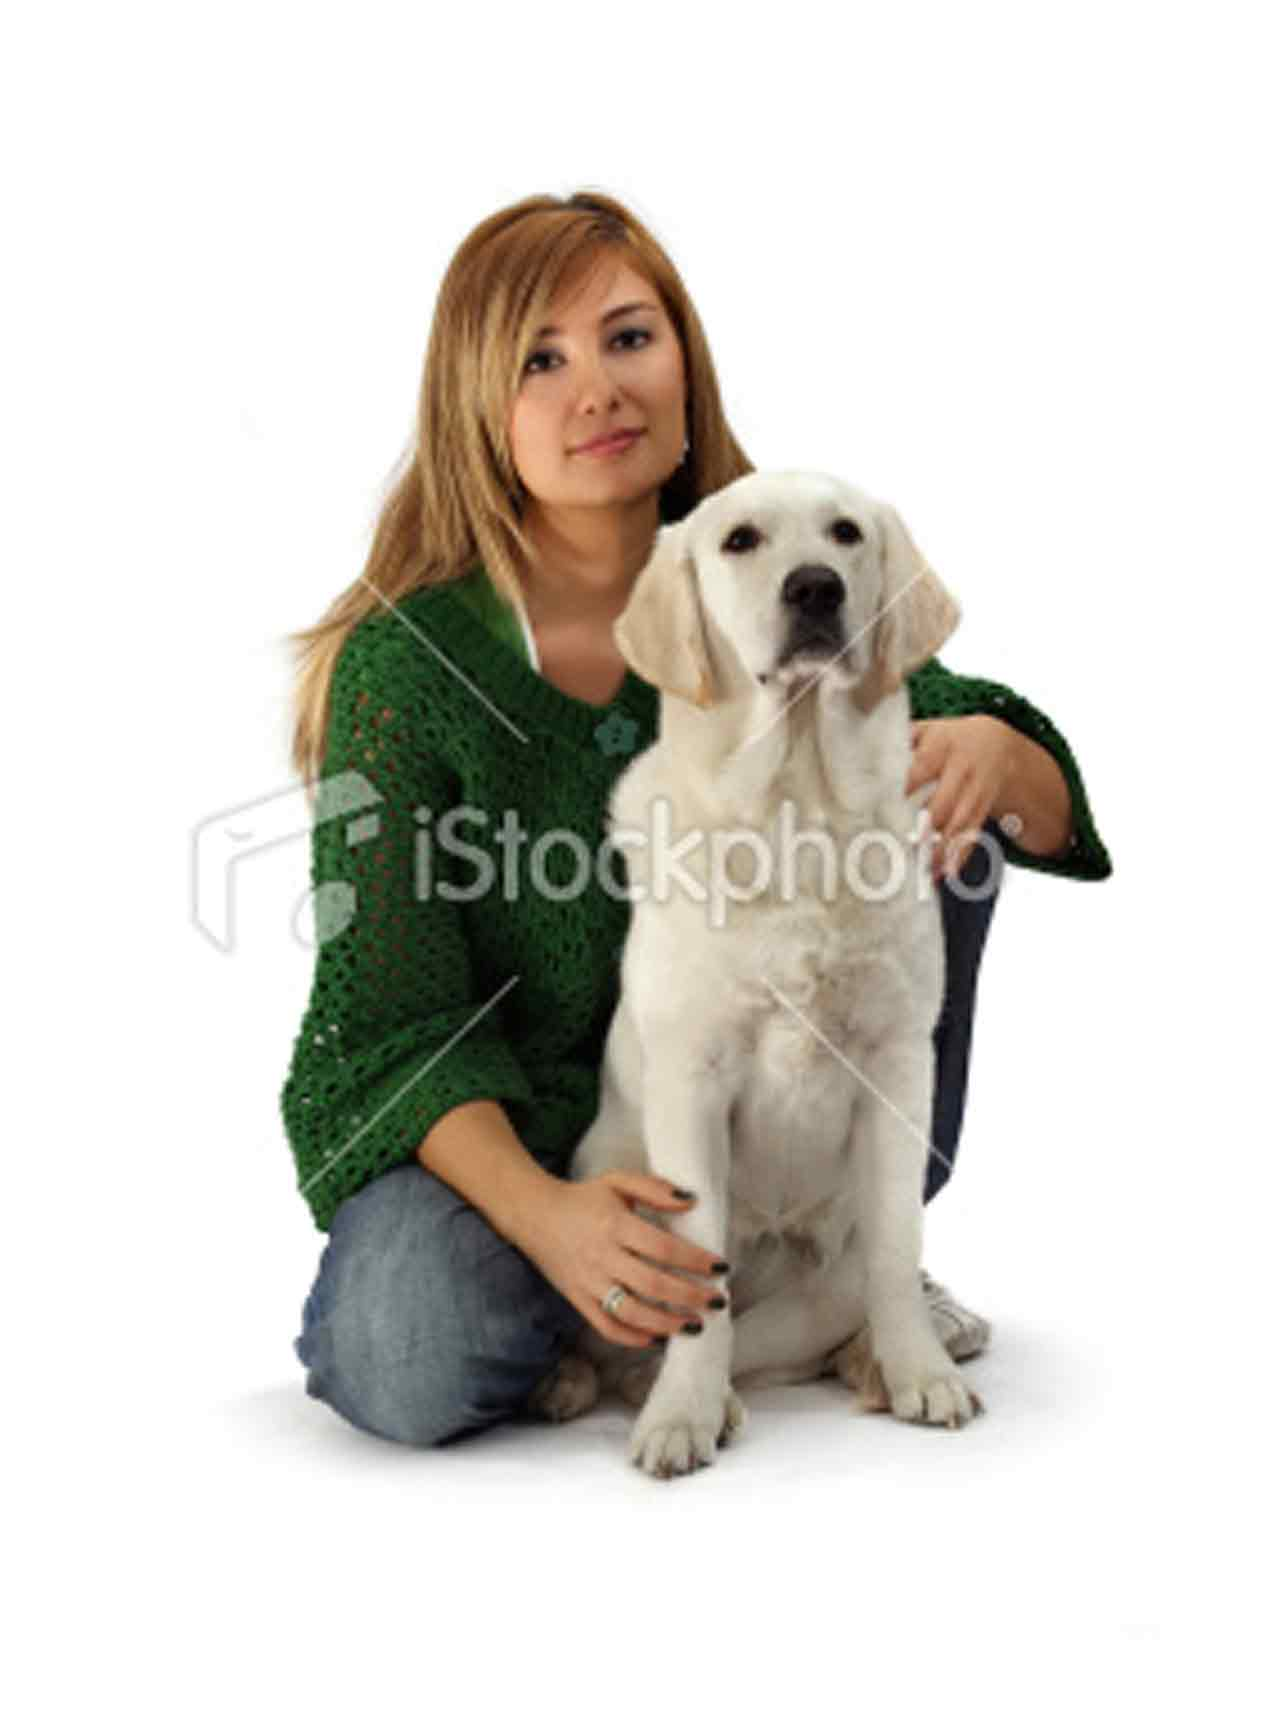 Women And Dogs Love Life http://www.mgkaya.com/album/ga13/pages/page ...